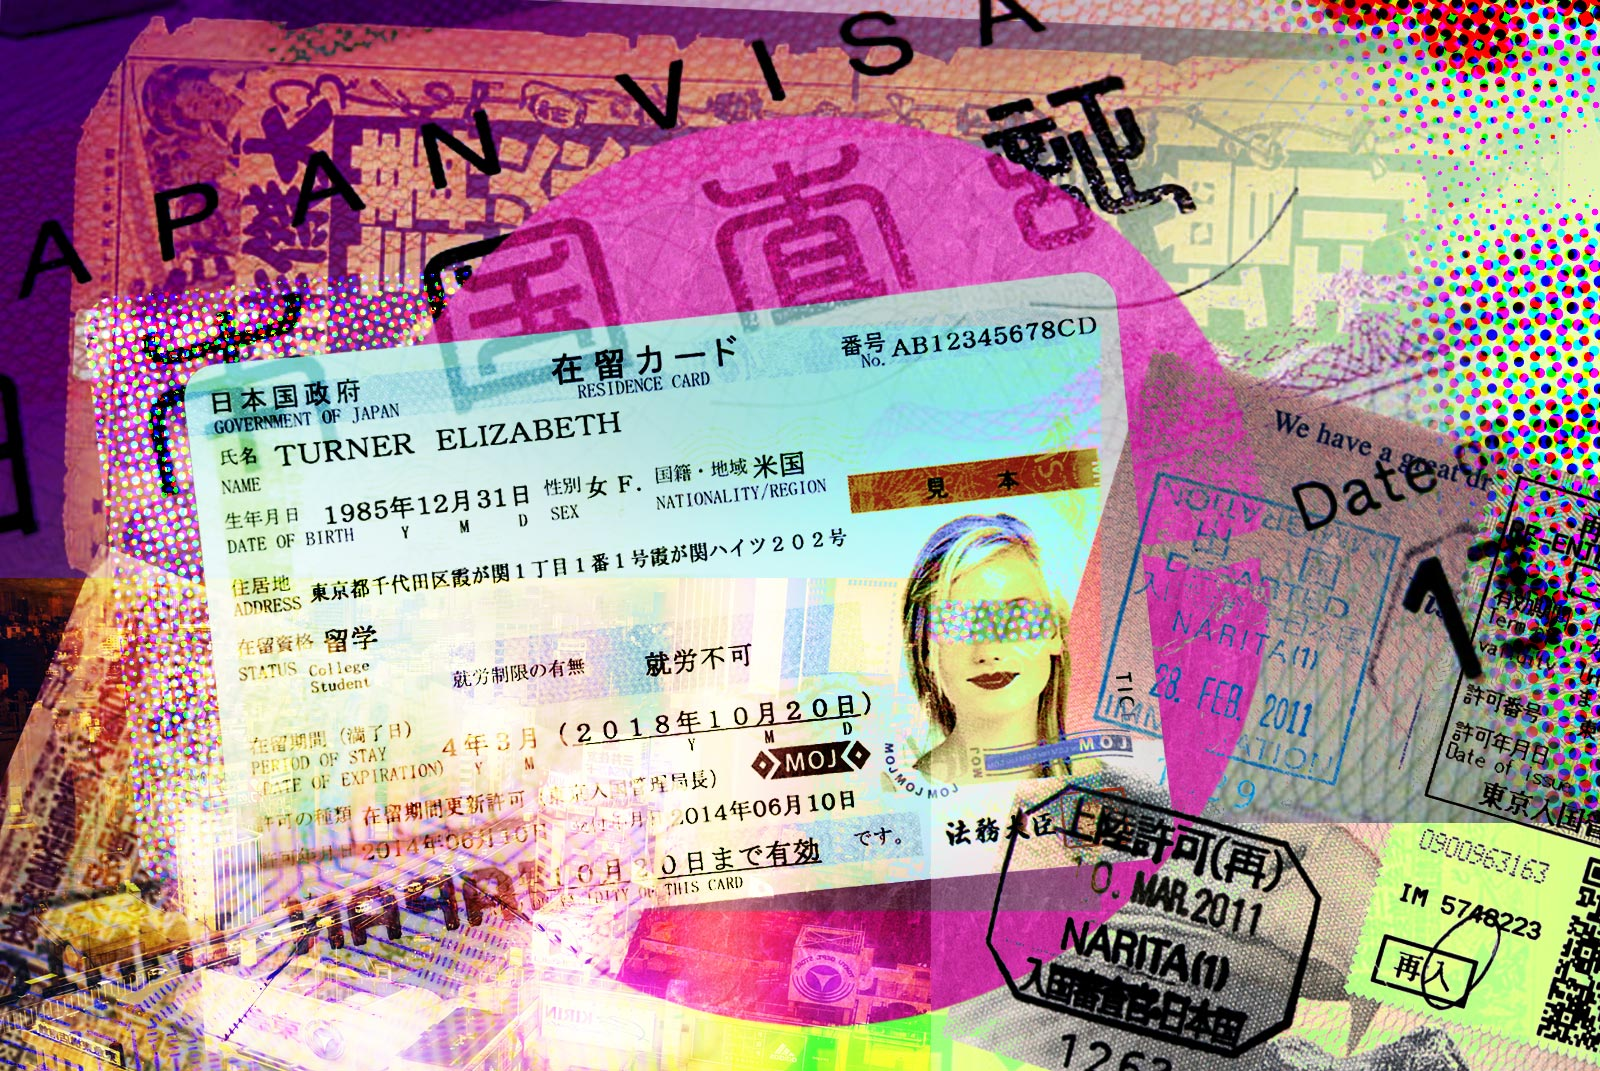 Visas and Status of Residence - GaijinPot